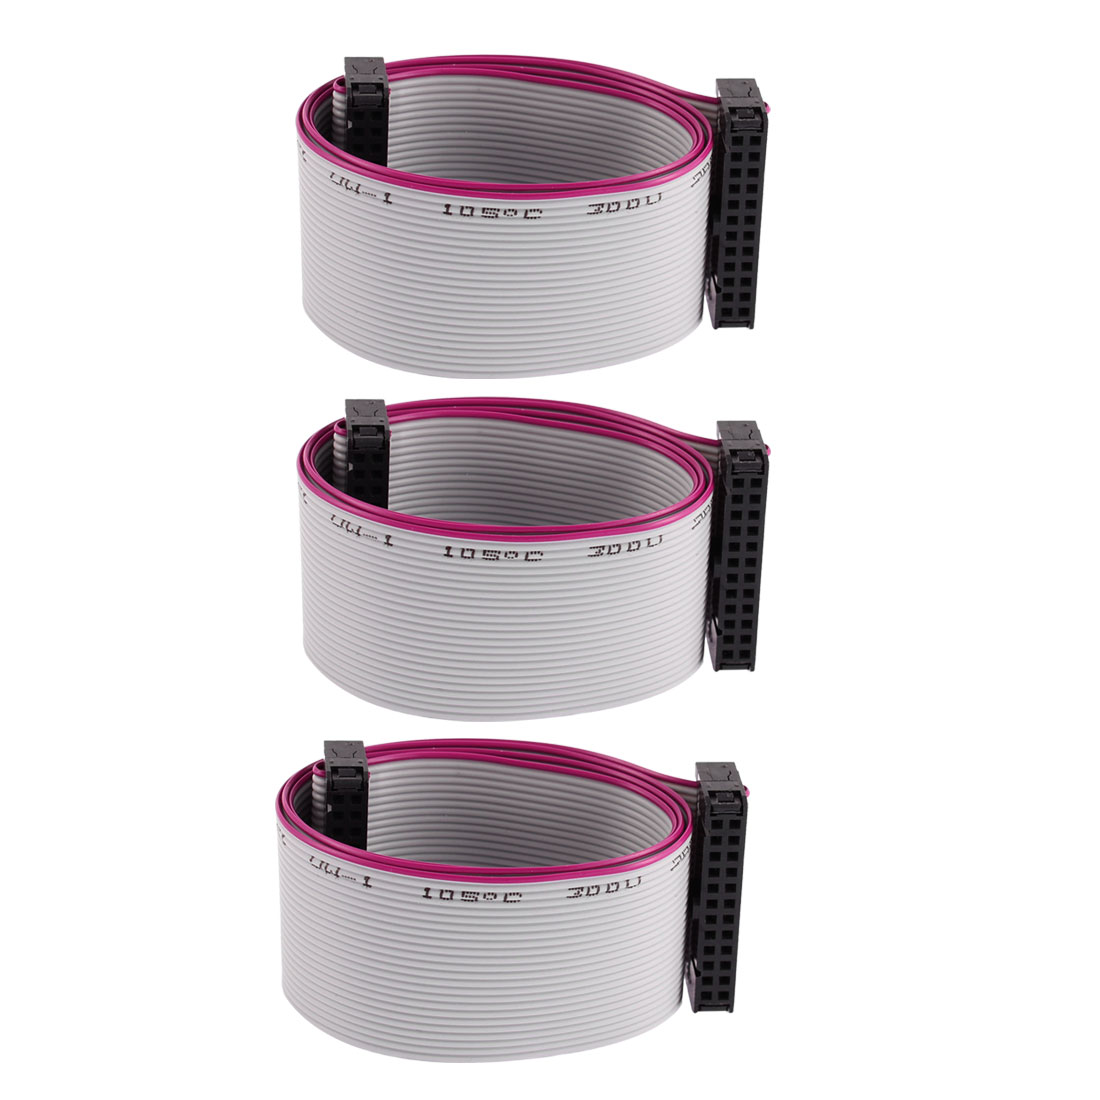 3 Pcs 2.54mm Pitch 24 Pin 24 Wire IDC Flat Ribbon Cable 50cm Length